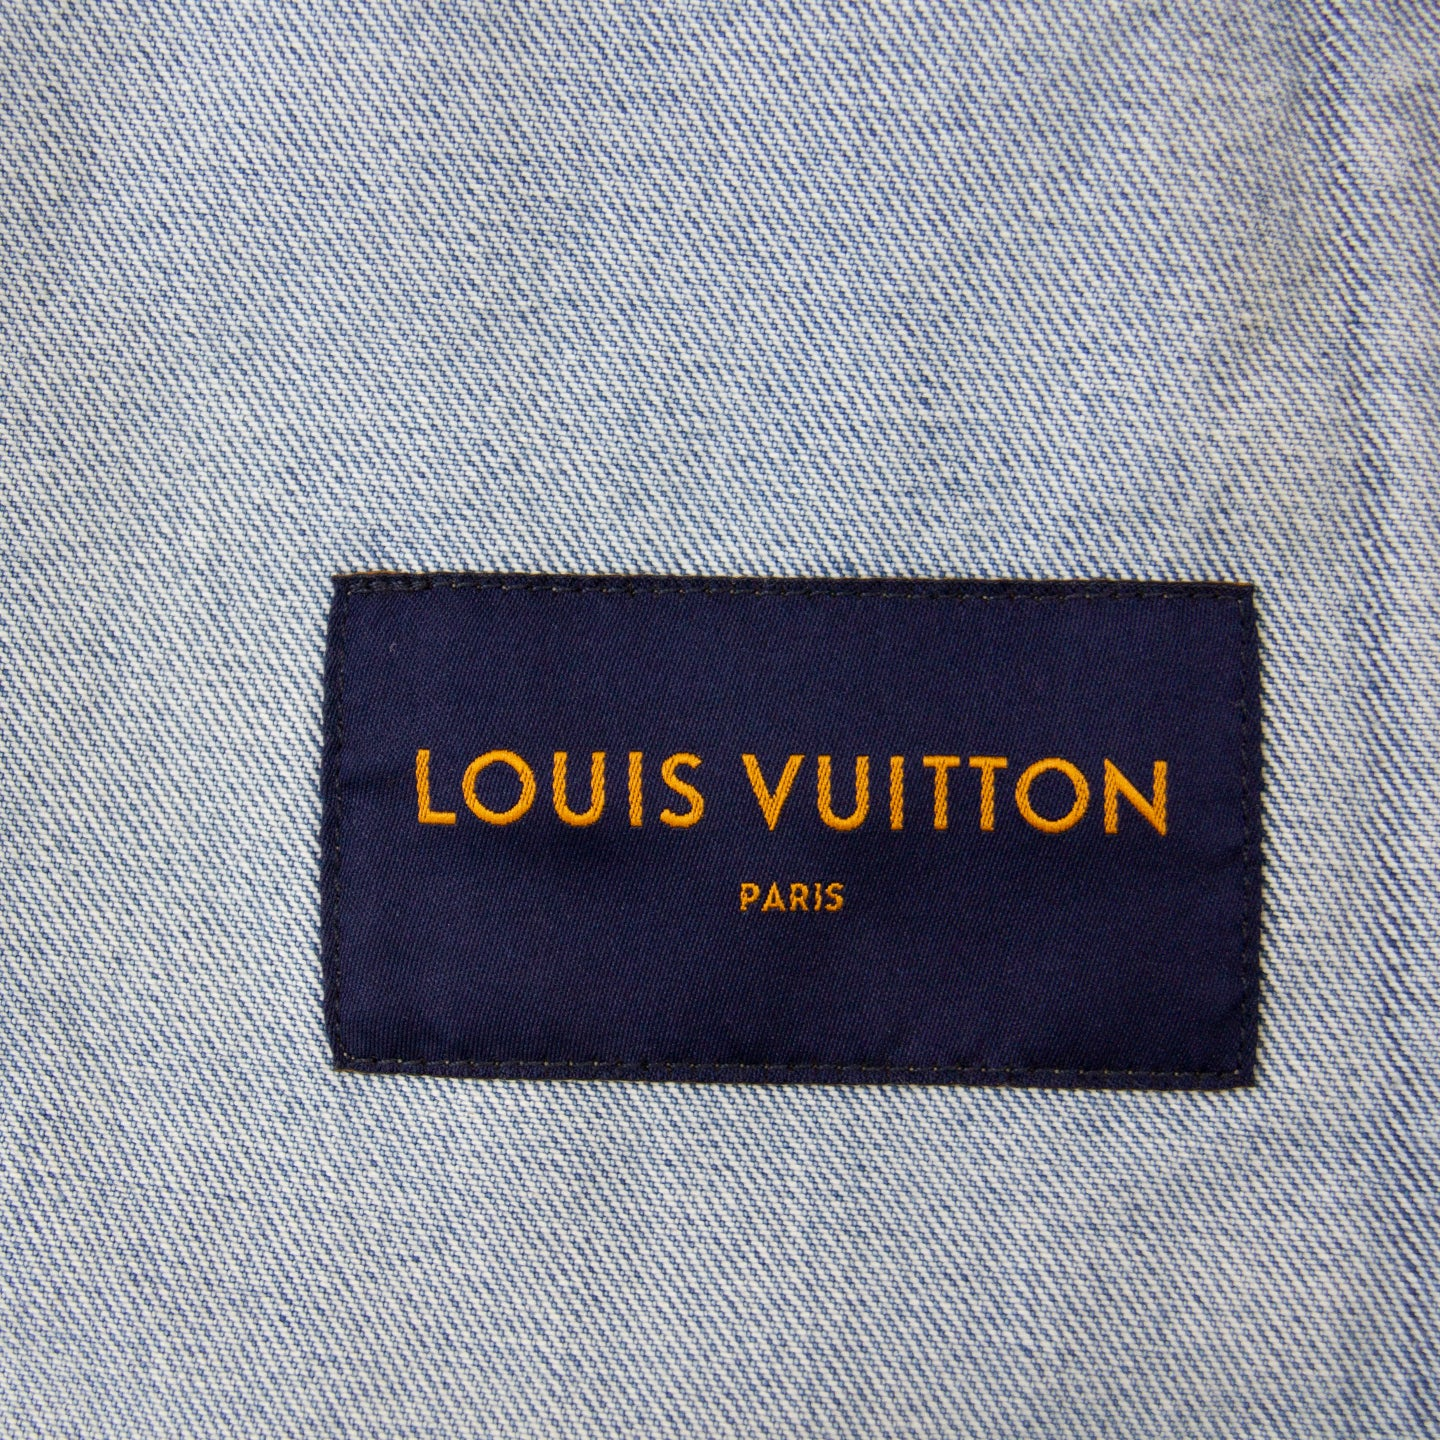 LOUIS VUITTON STAPLES EDITION DNA DENIM JACKET